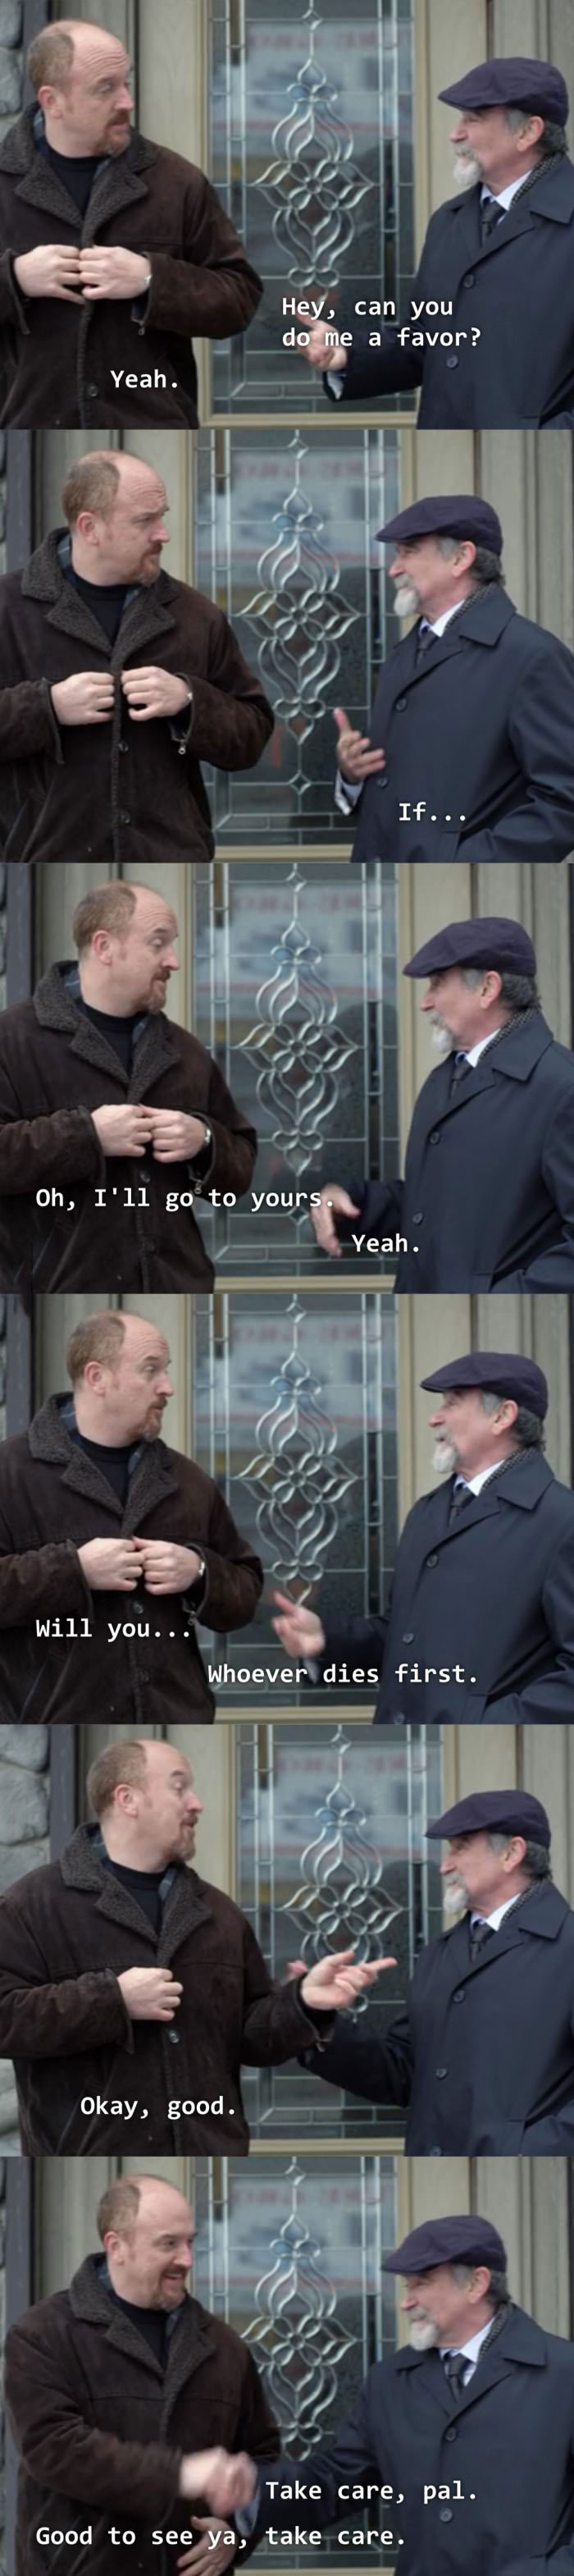 louis ck and robin williams make a deal